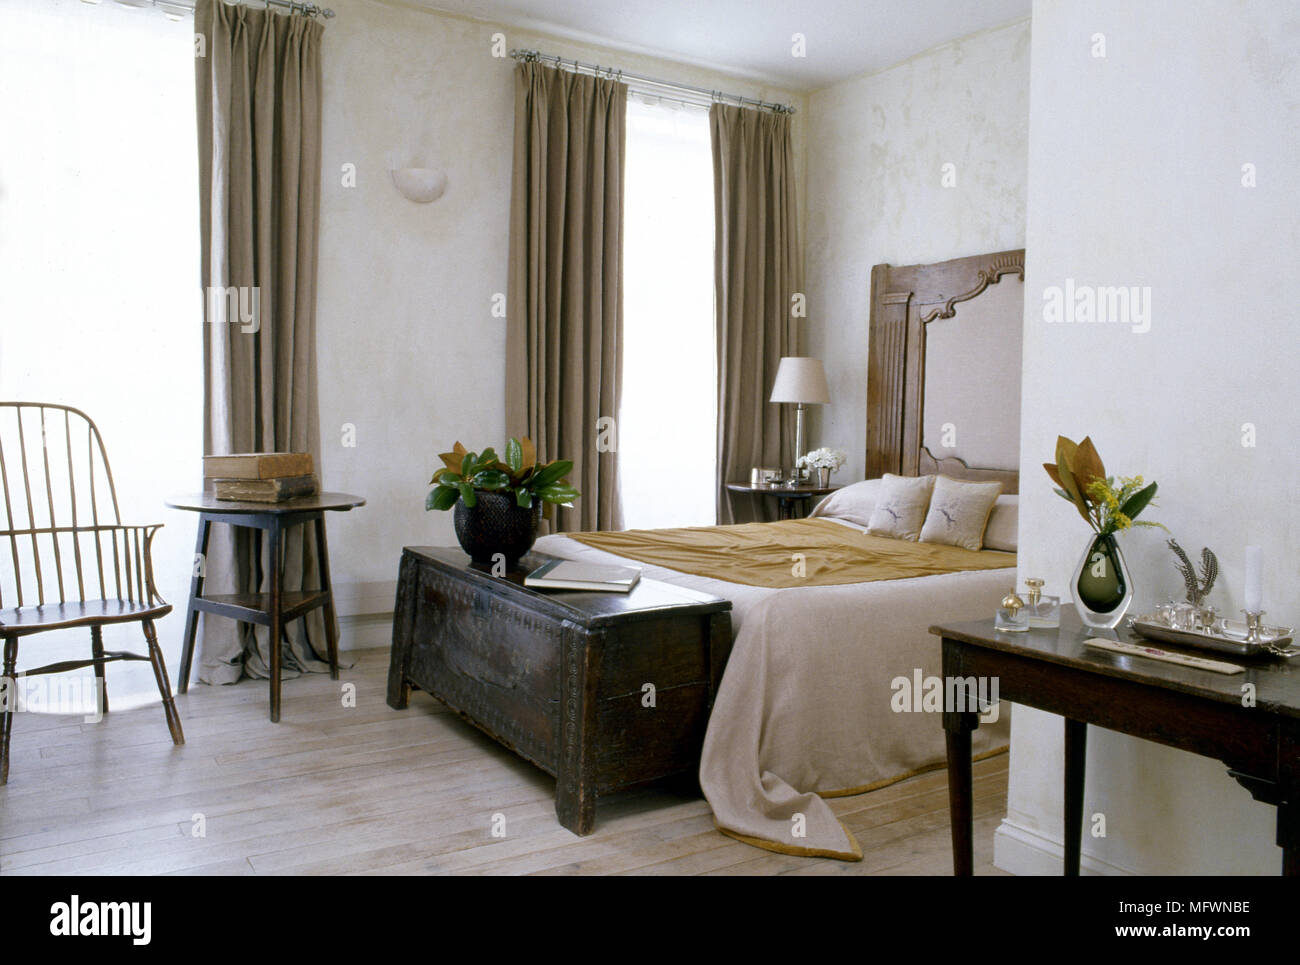 Astounding 0498 Stock Photos 0498 Stock Images Alamy Gmtry Best Dining Table And Chair Ideas Images Gmtryco